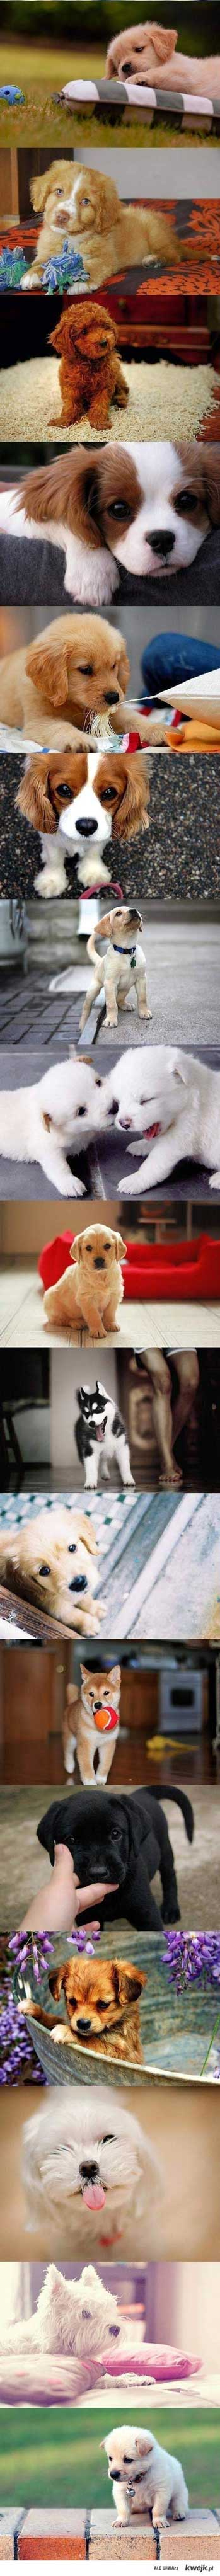 cute puppies film strip photos longest ever Cute puppies   the longest film strip ever, 42 puppies!